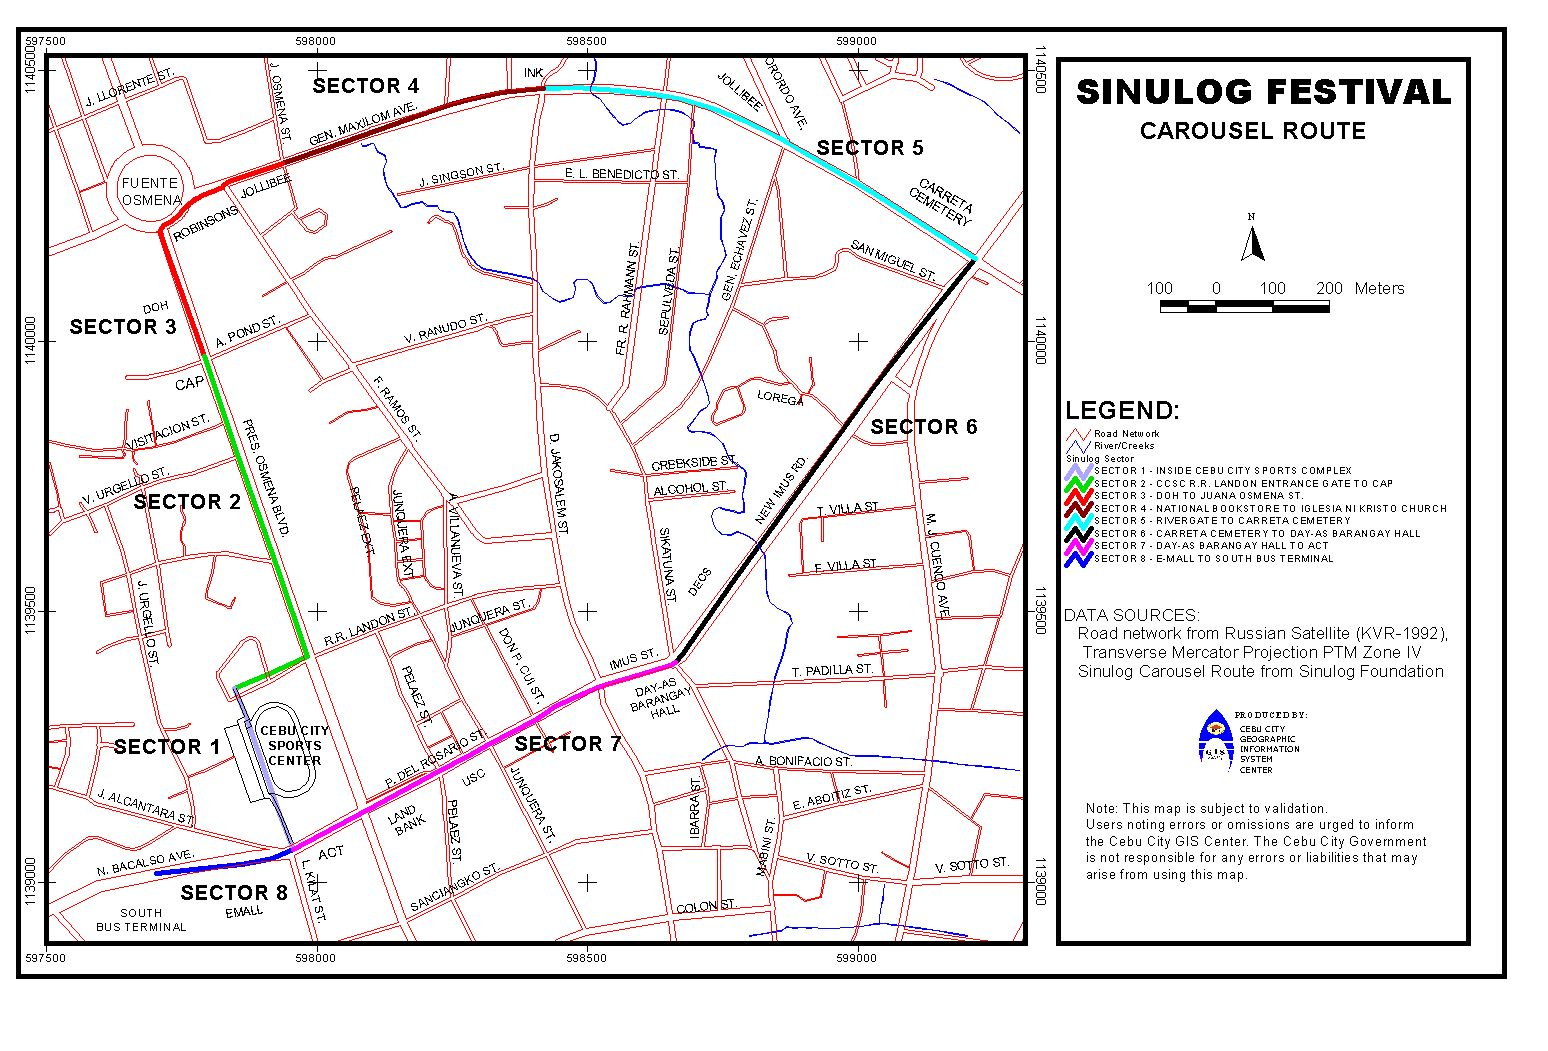 sinulog 2012 route